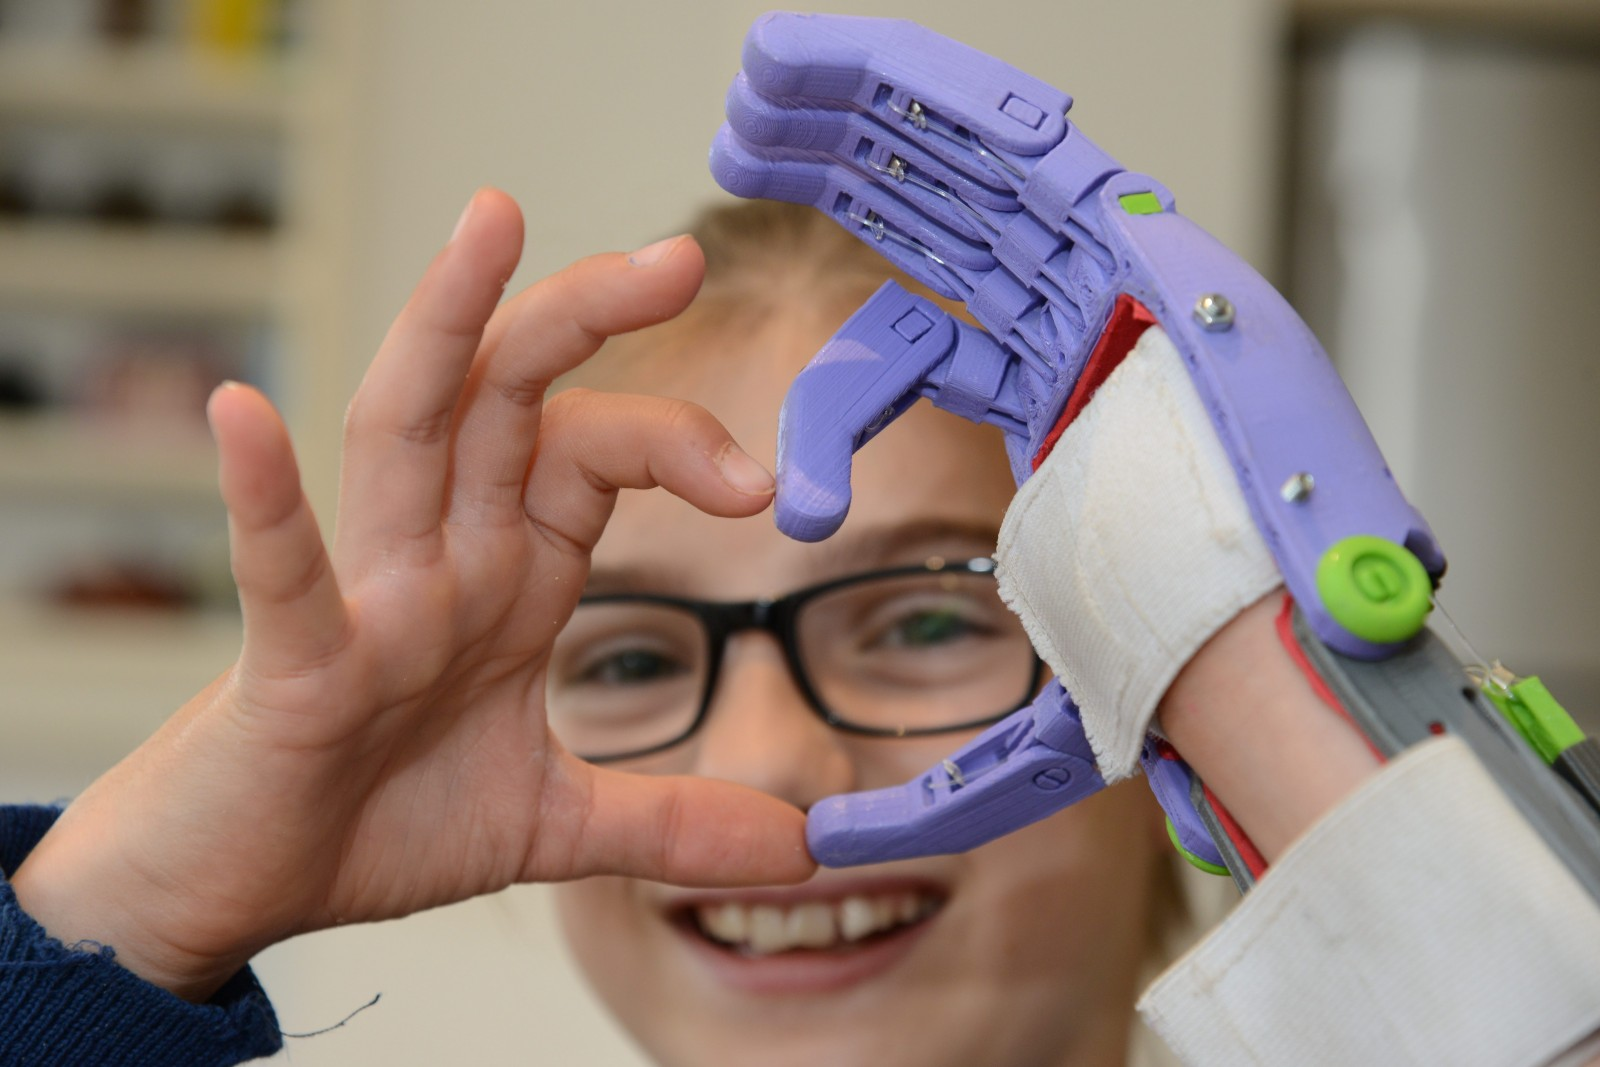 Schoolgirl gets a new prosthetic hand – built by her CLASSMATES!